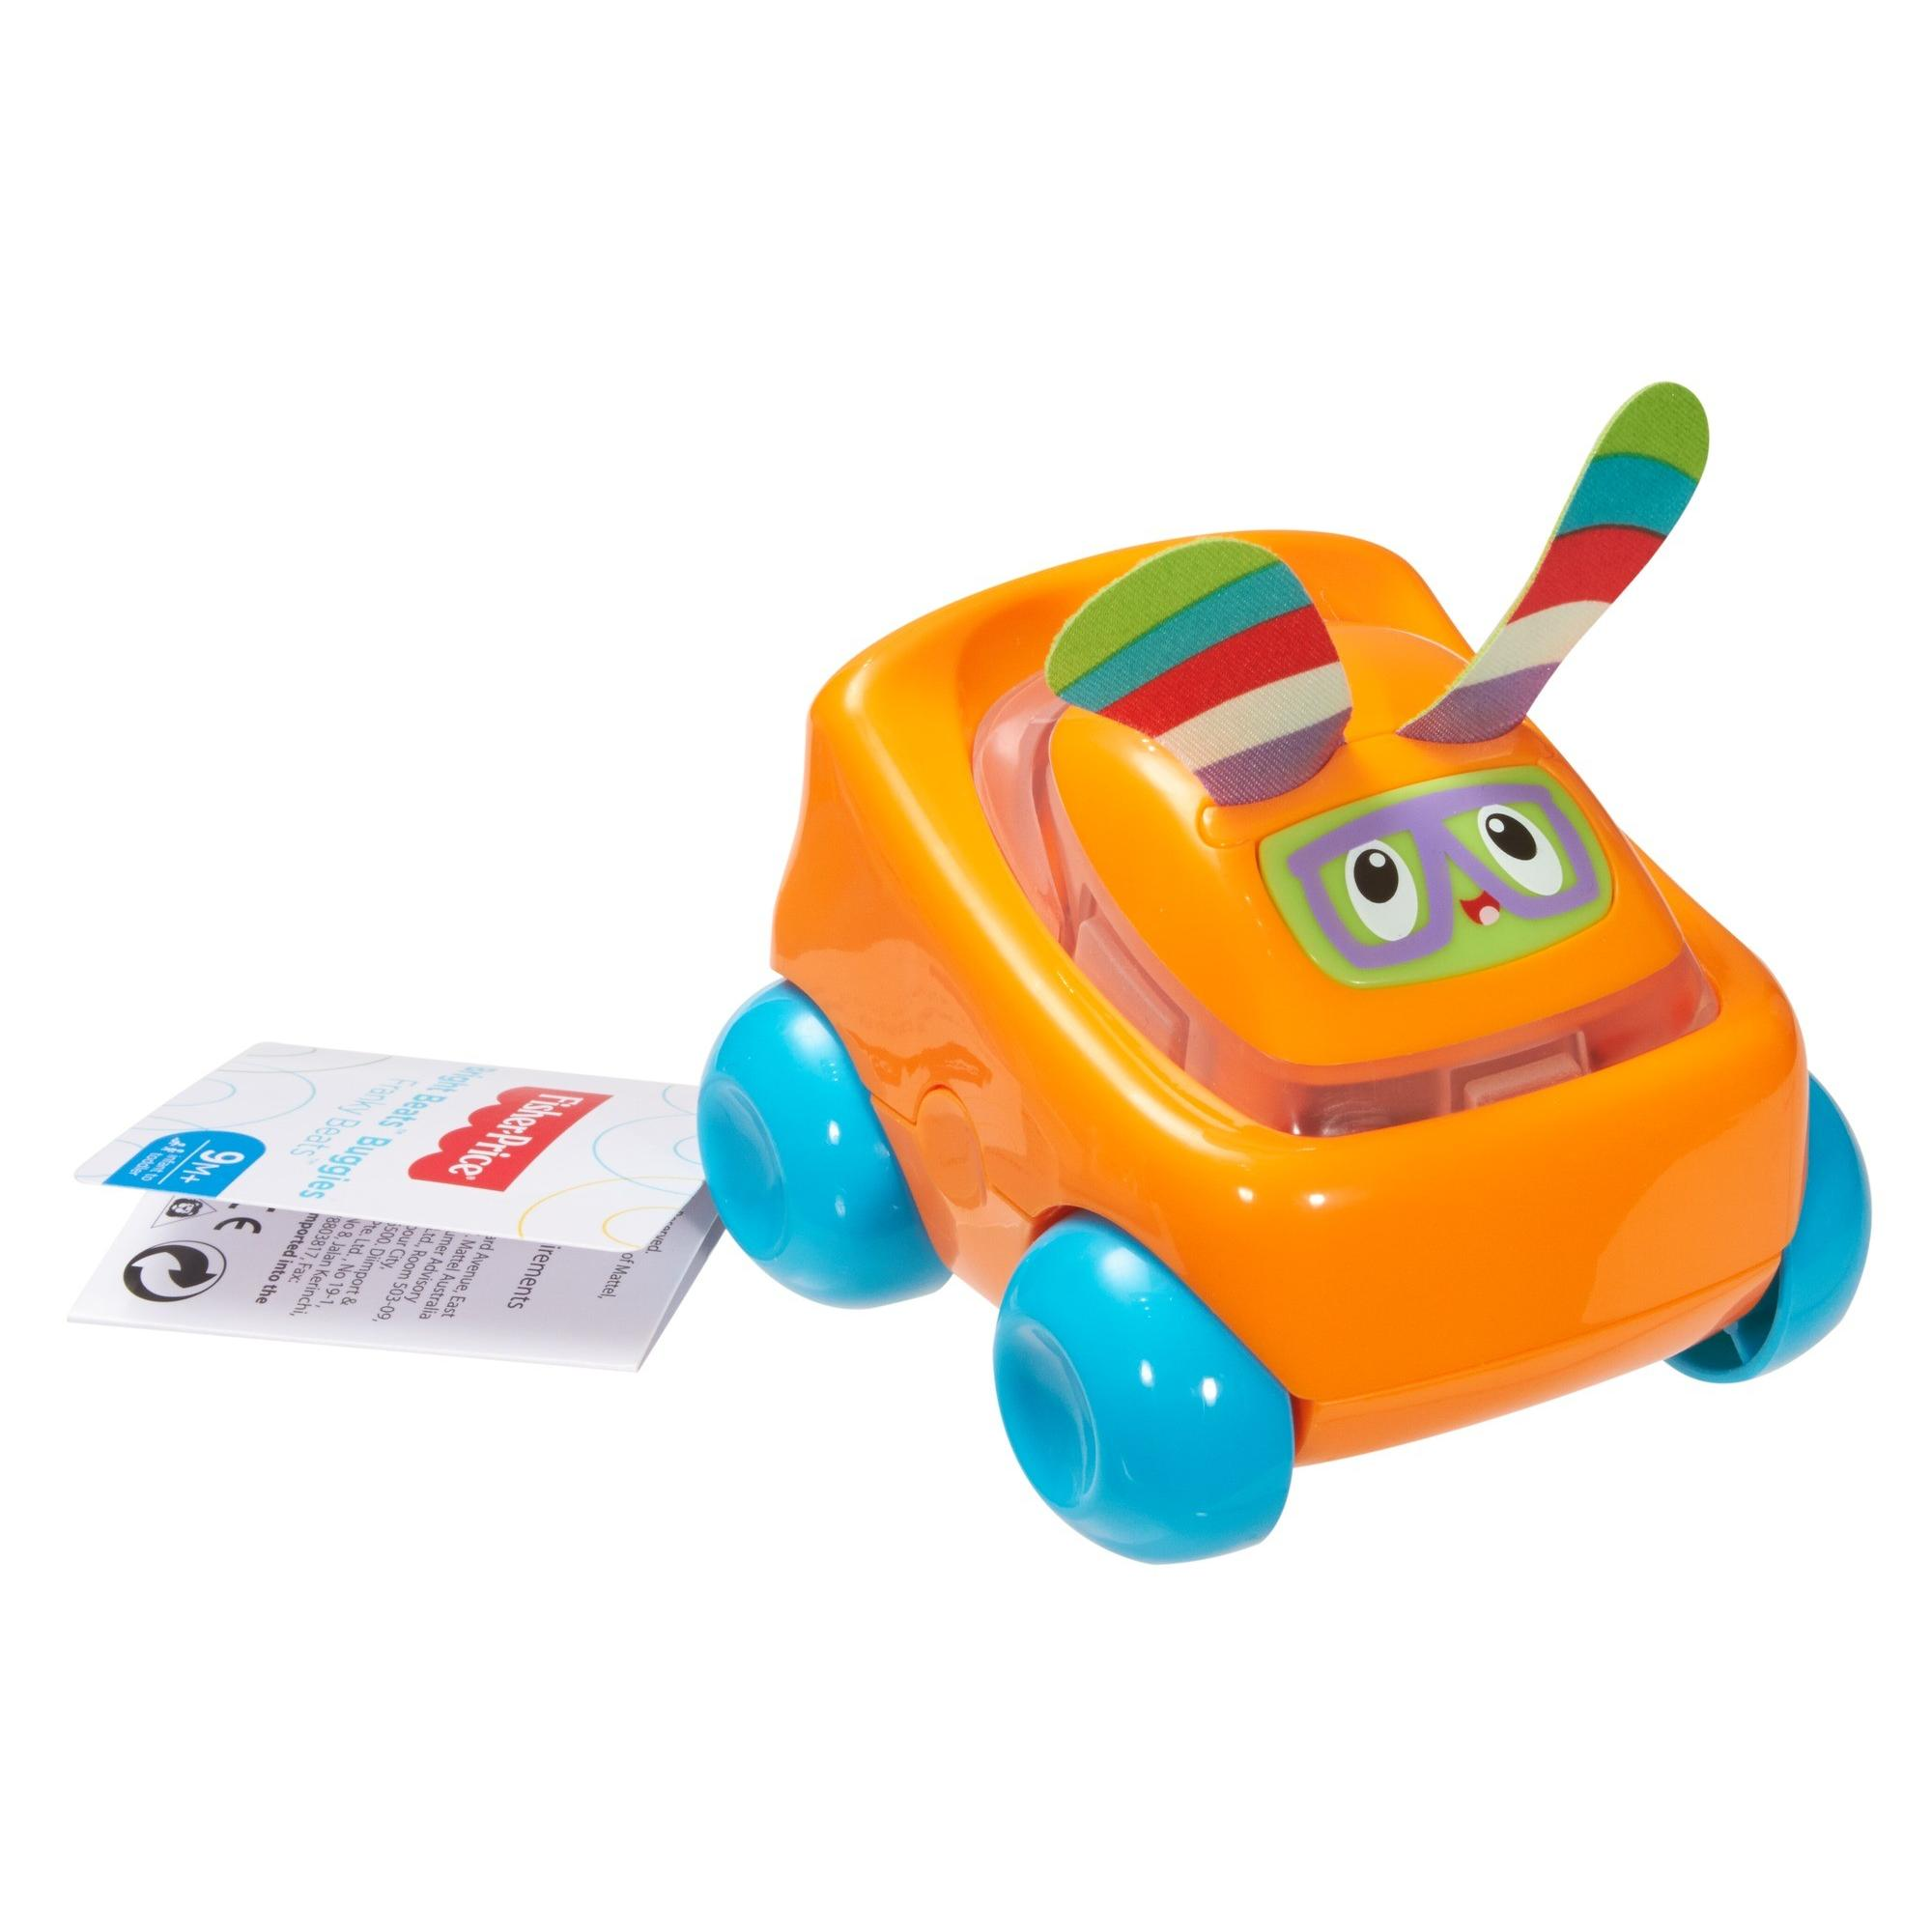 Fullsize Of Fisher Price Bright Beats Smart Touch Play Space